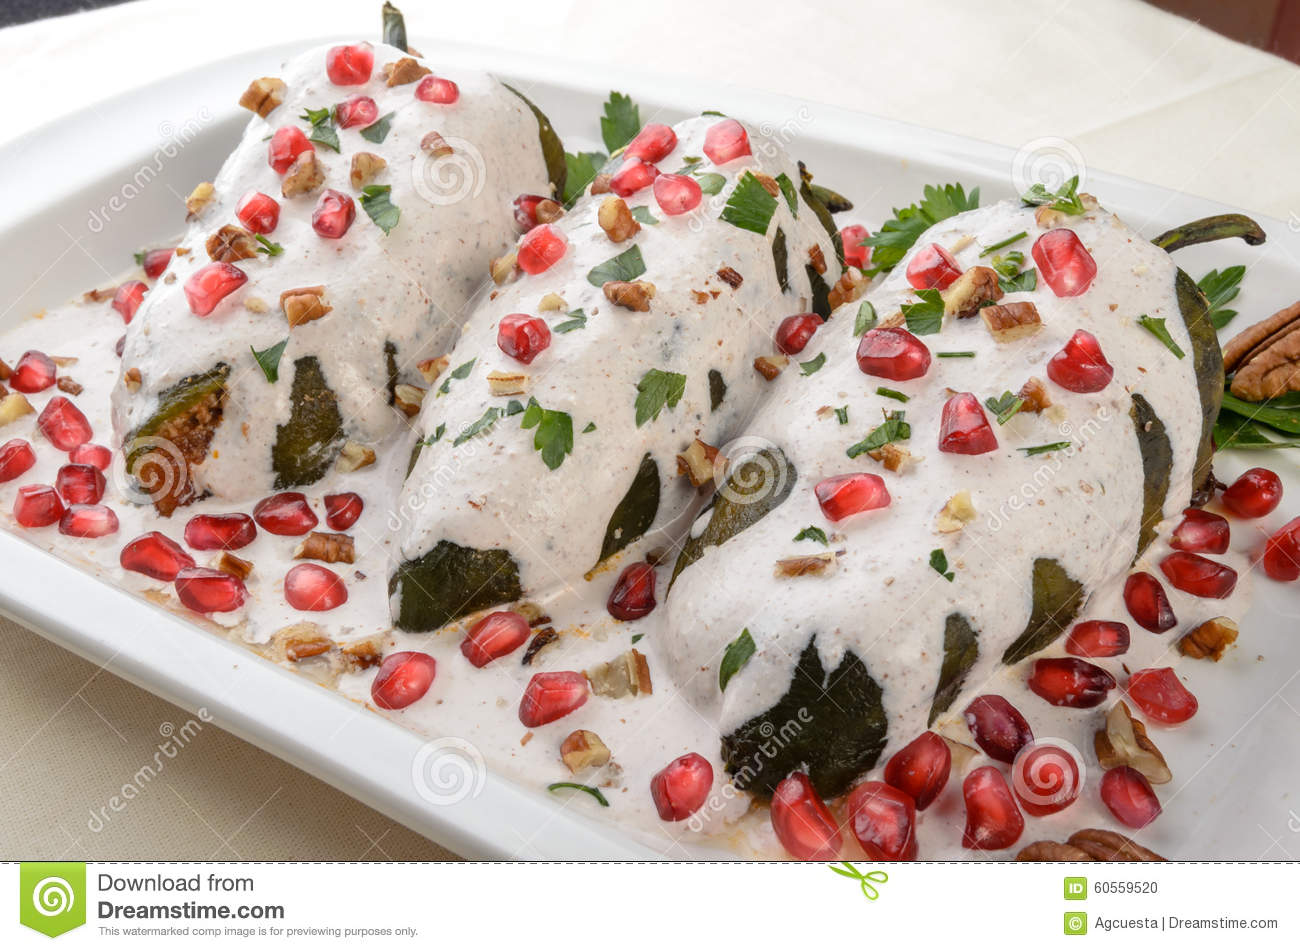 238 Chiles Nogada Photos Free Royalty Free Stock Photos From Dreamstime